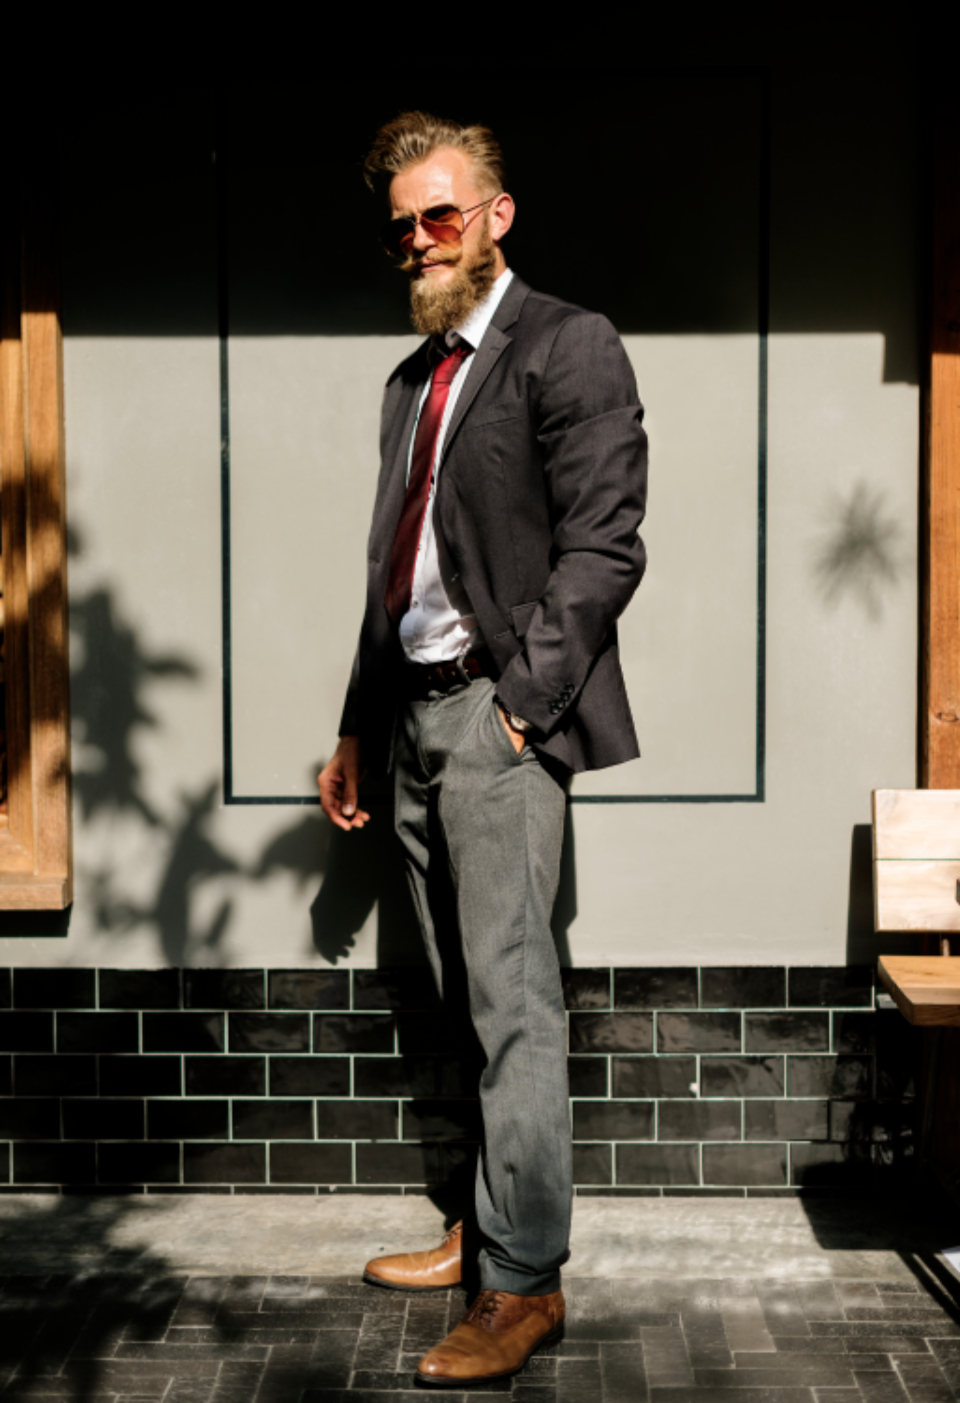 beard business confidence corporate courage handsome man outdoors smart standing style suit sunlight sunny fashion suit clothes people